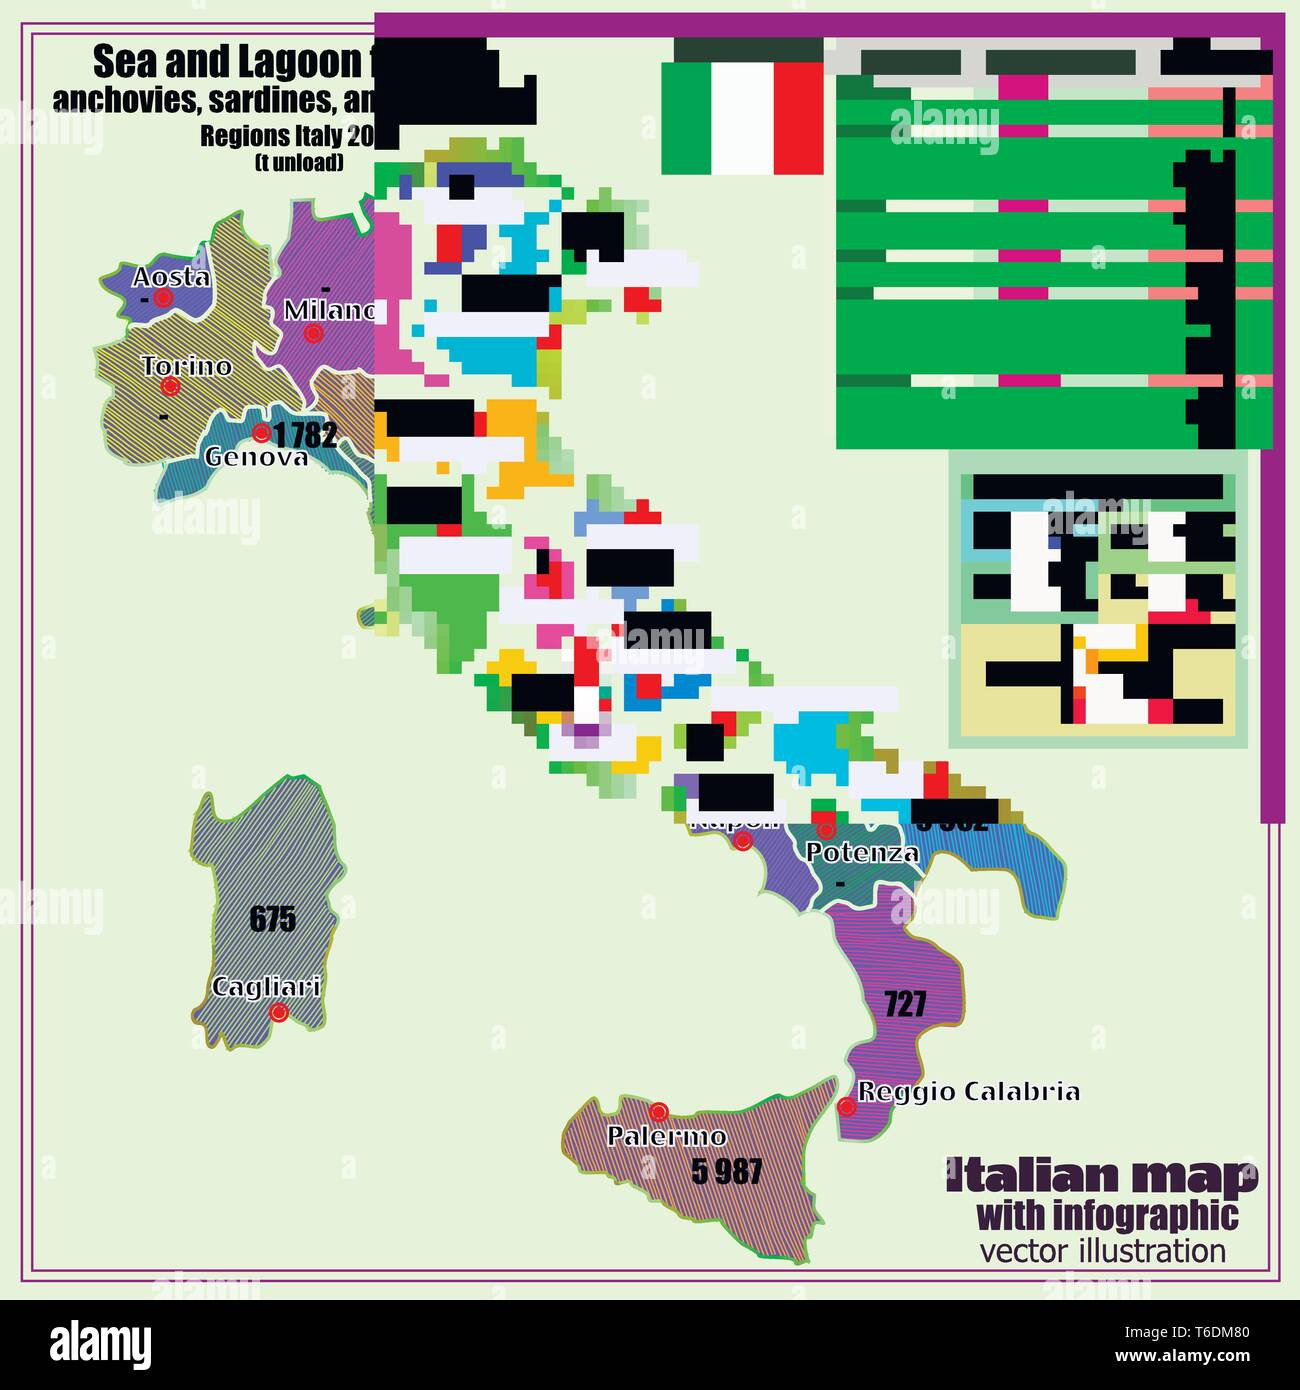 Regions Of Italy Map With Cities.Map Of Italy With Infographic Sea And Lagoon Fishing Italy Map With